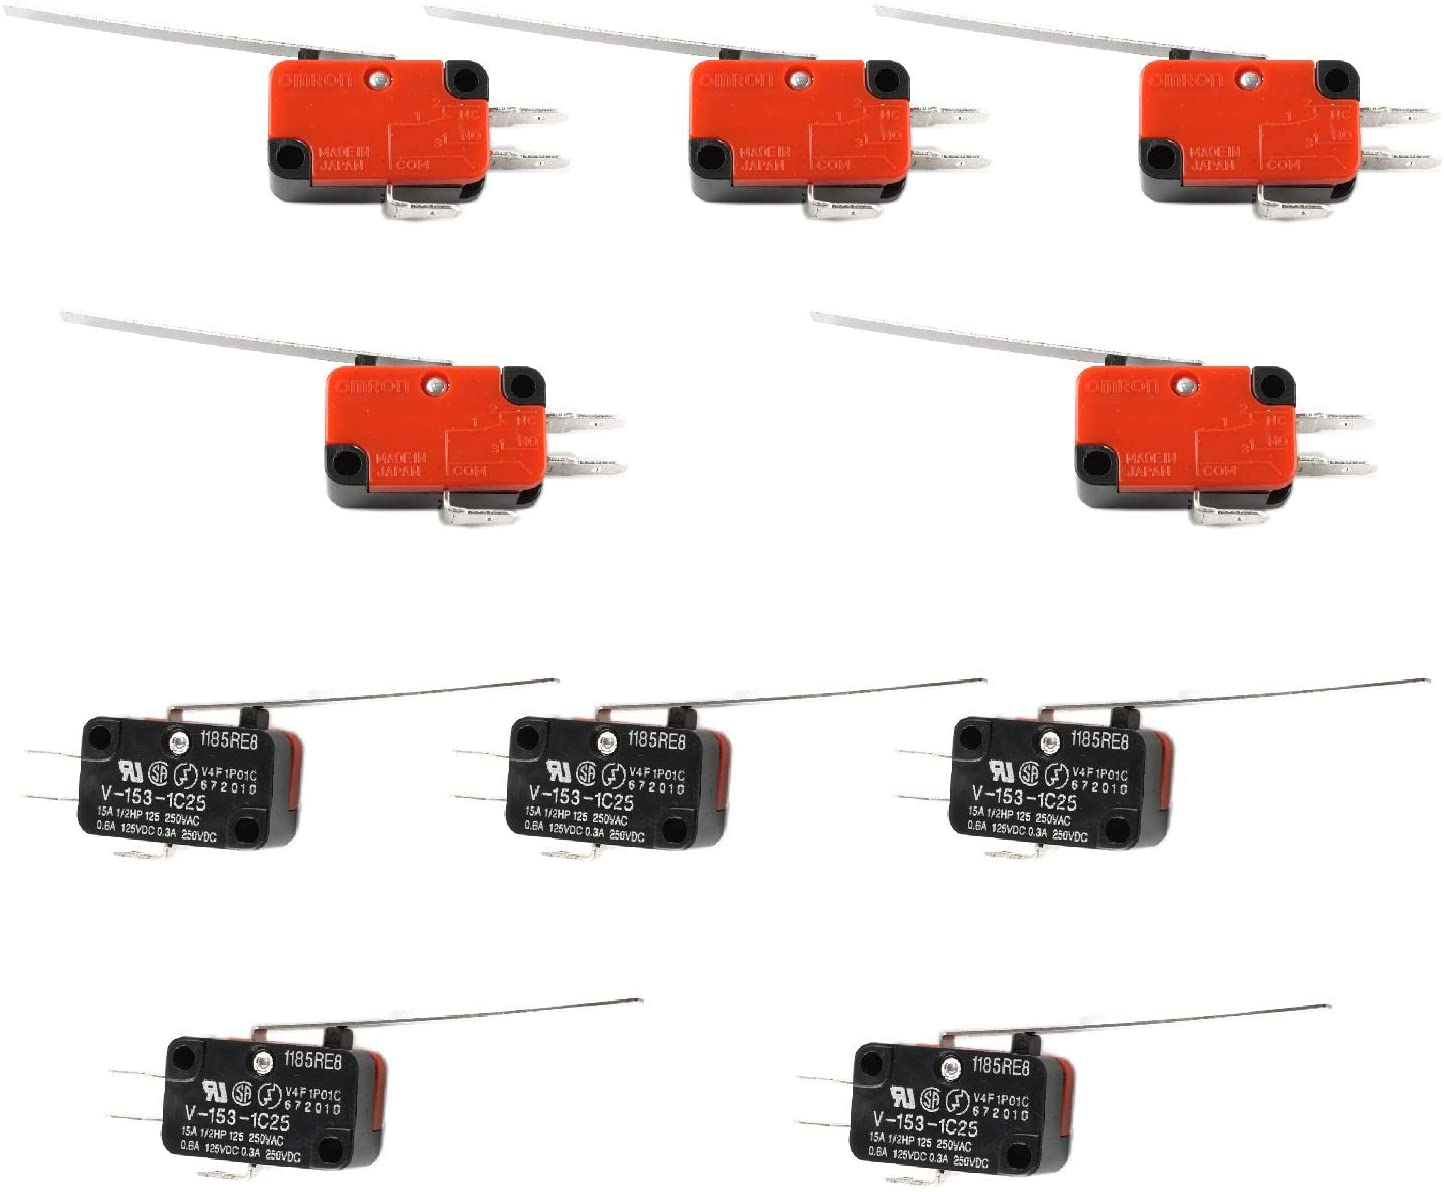 Podoy V-153-1C25 Micro Limit Switch Compatible with Arduino CYT1068 Long Straight Hinge Lever Arm SPDT Snap Action LOT Quick Connect 15A 250VAC(Pack of 10)